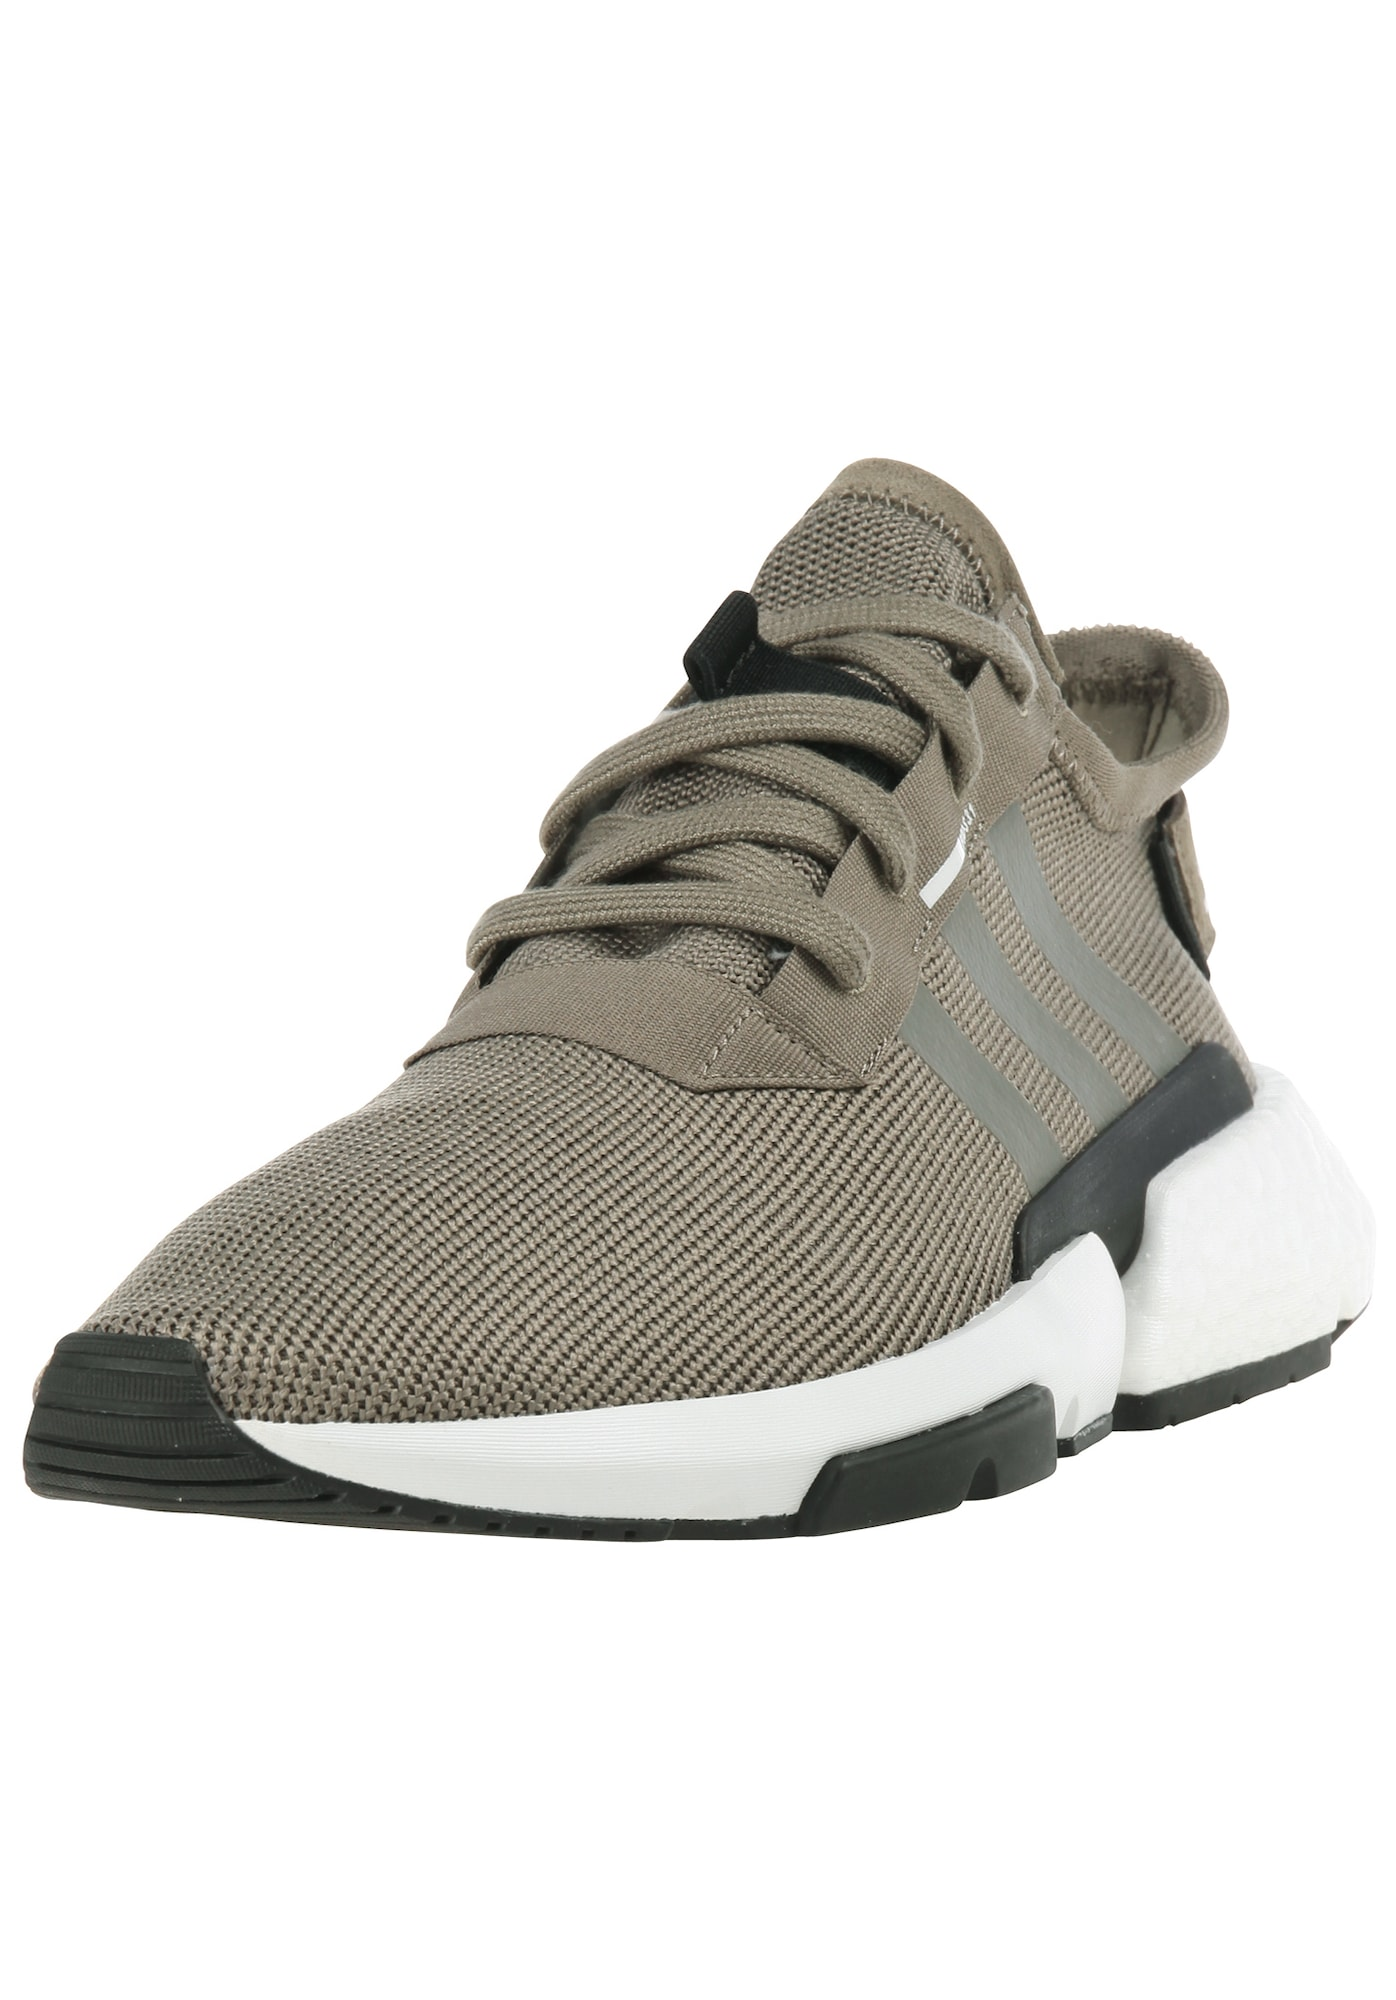 ADIDAS ORIGINALS, Heren Sneakers laag 'POD-S3.1', kaki